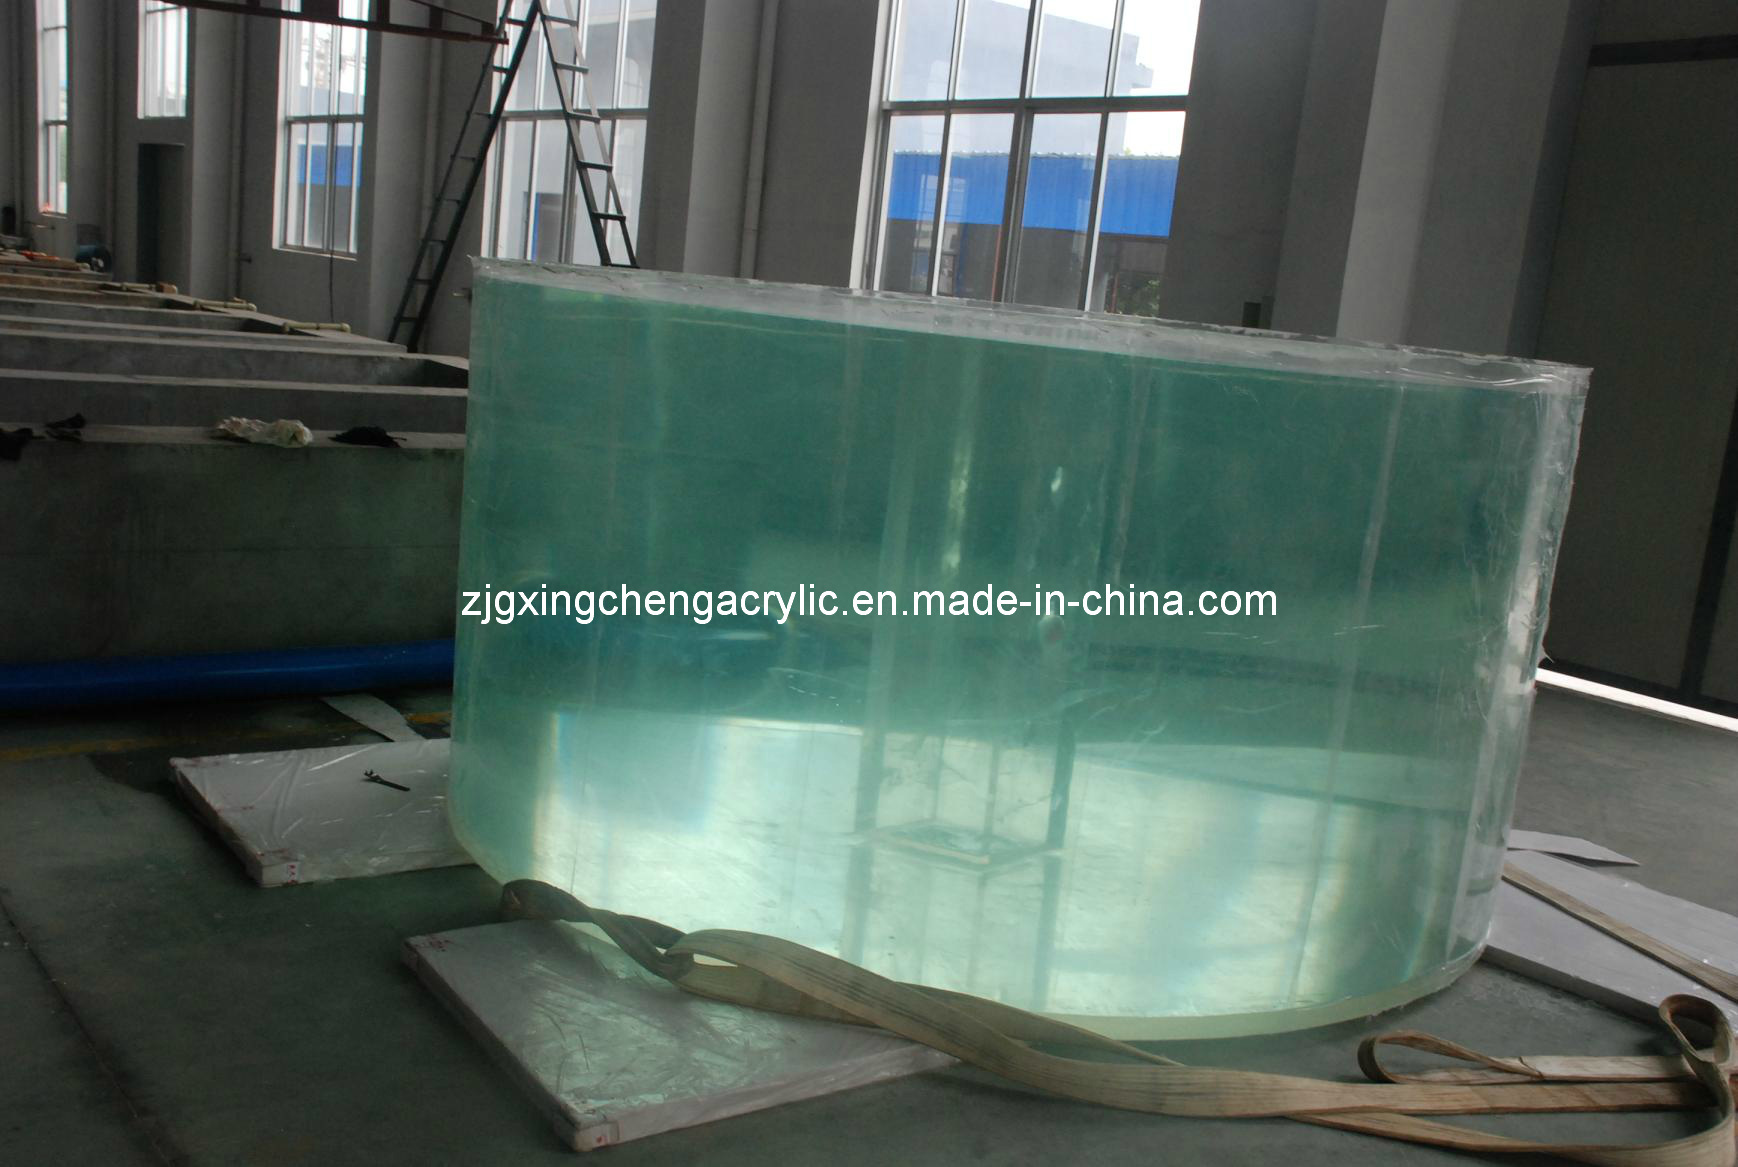 China acrylic fish tank photos pictures made in for Plastic fish tank